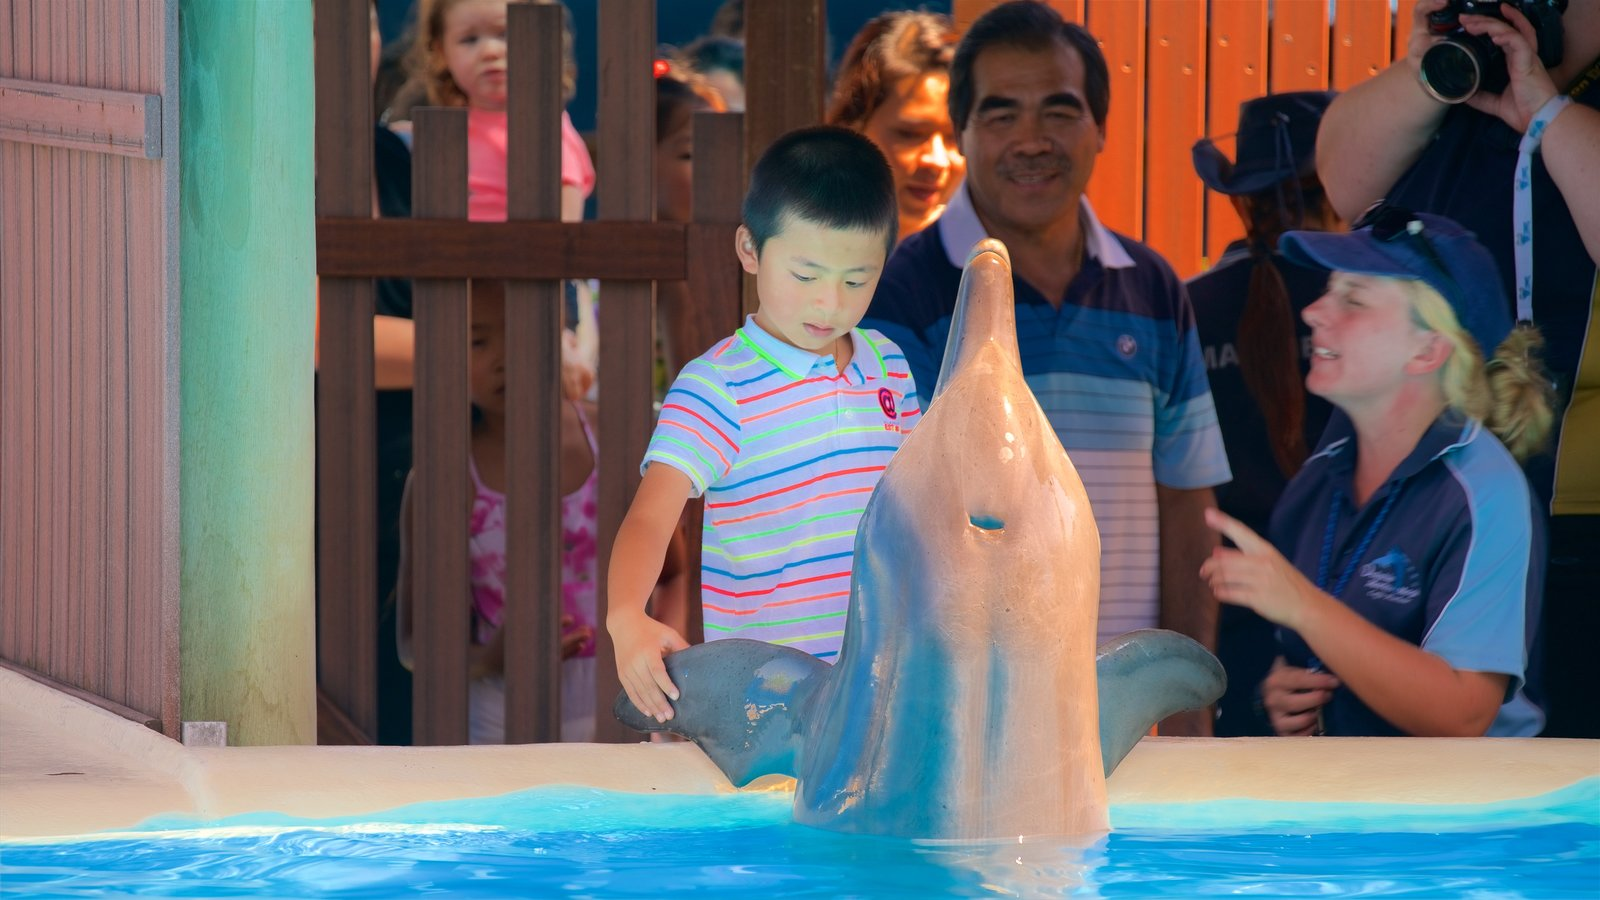 Dolphin Marine Magic which includes cuddly or friendly animals and zoo animals as well as a small group of people